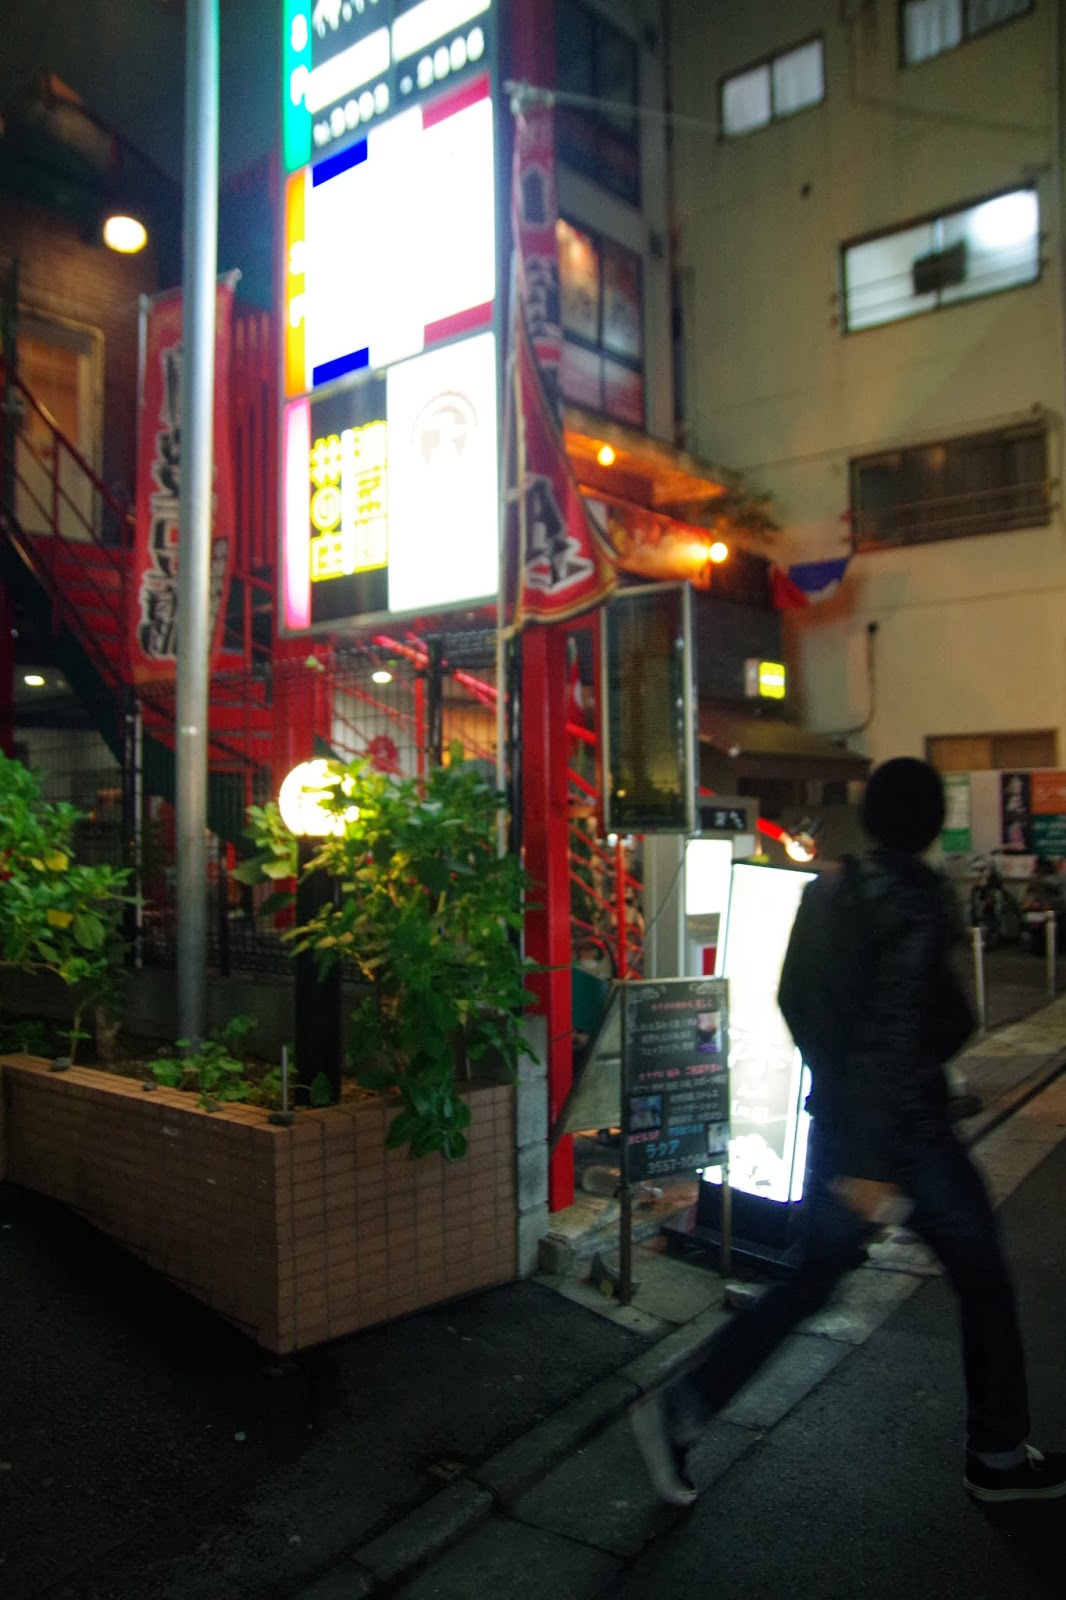 nerima men 洋服の青山 練馬石神井店 in nerima, reviews by real people yelp is a fun and easy way to find, recommend and talk about what's great and not so great in nerima and beyond.